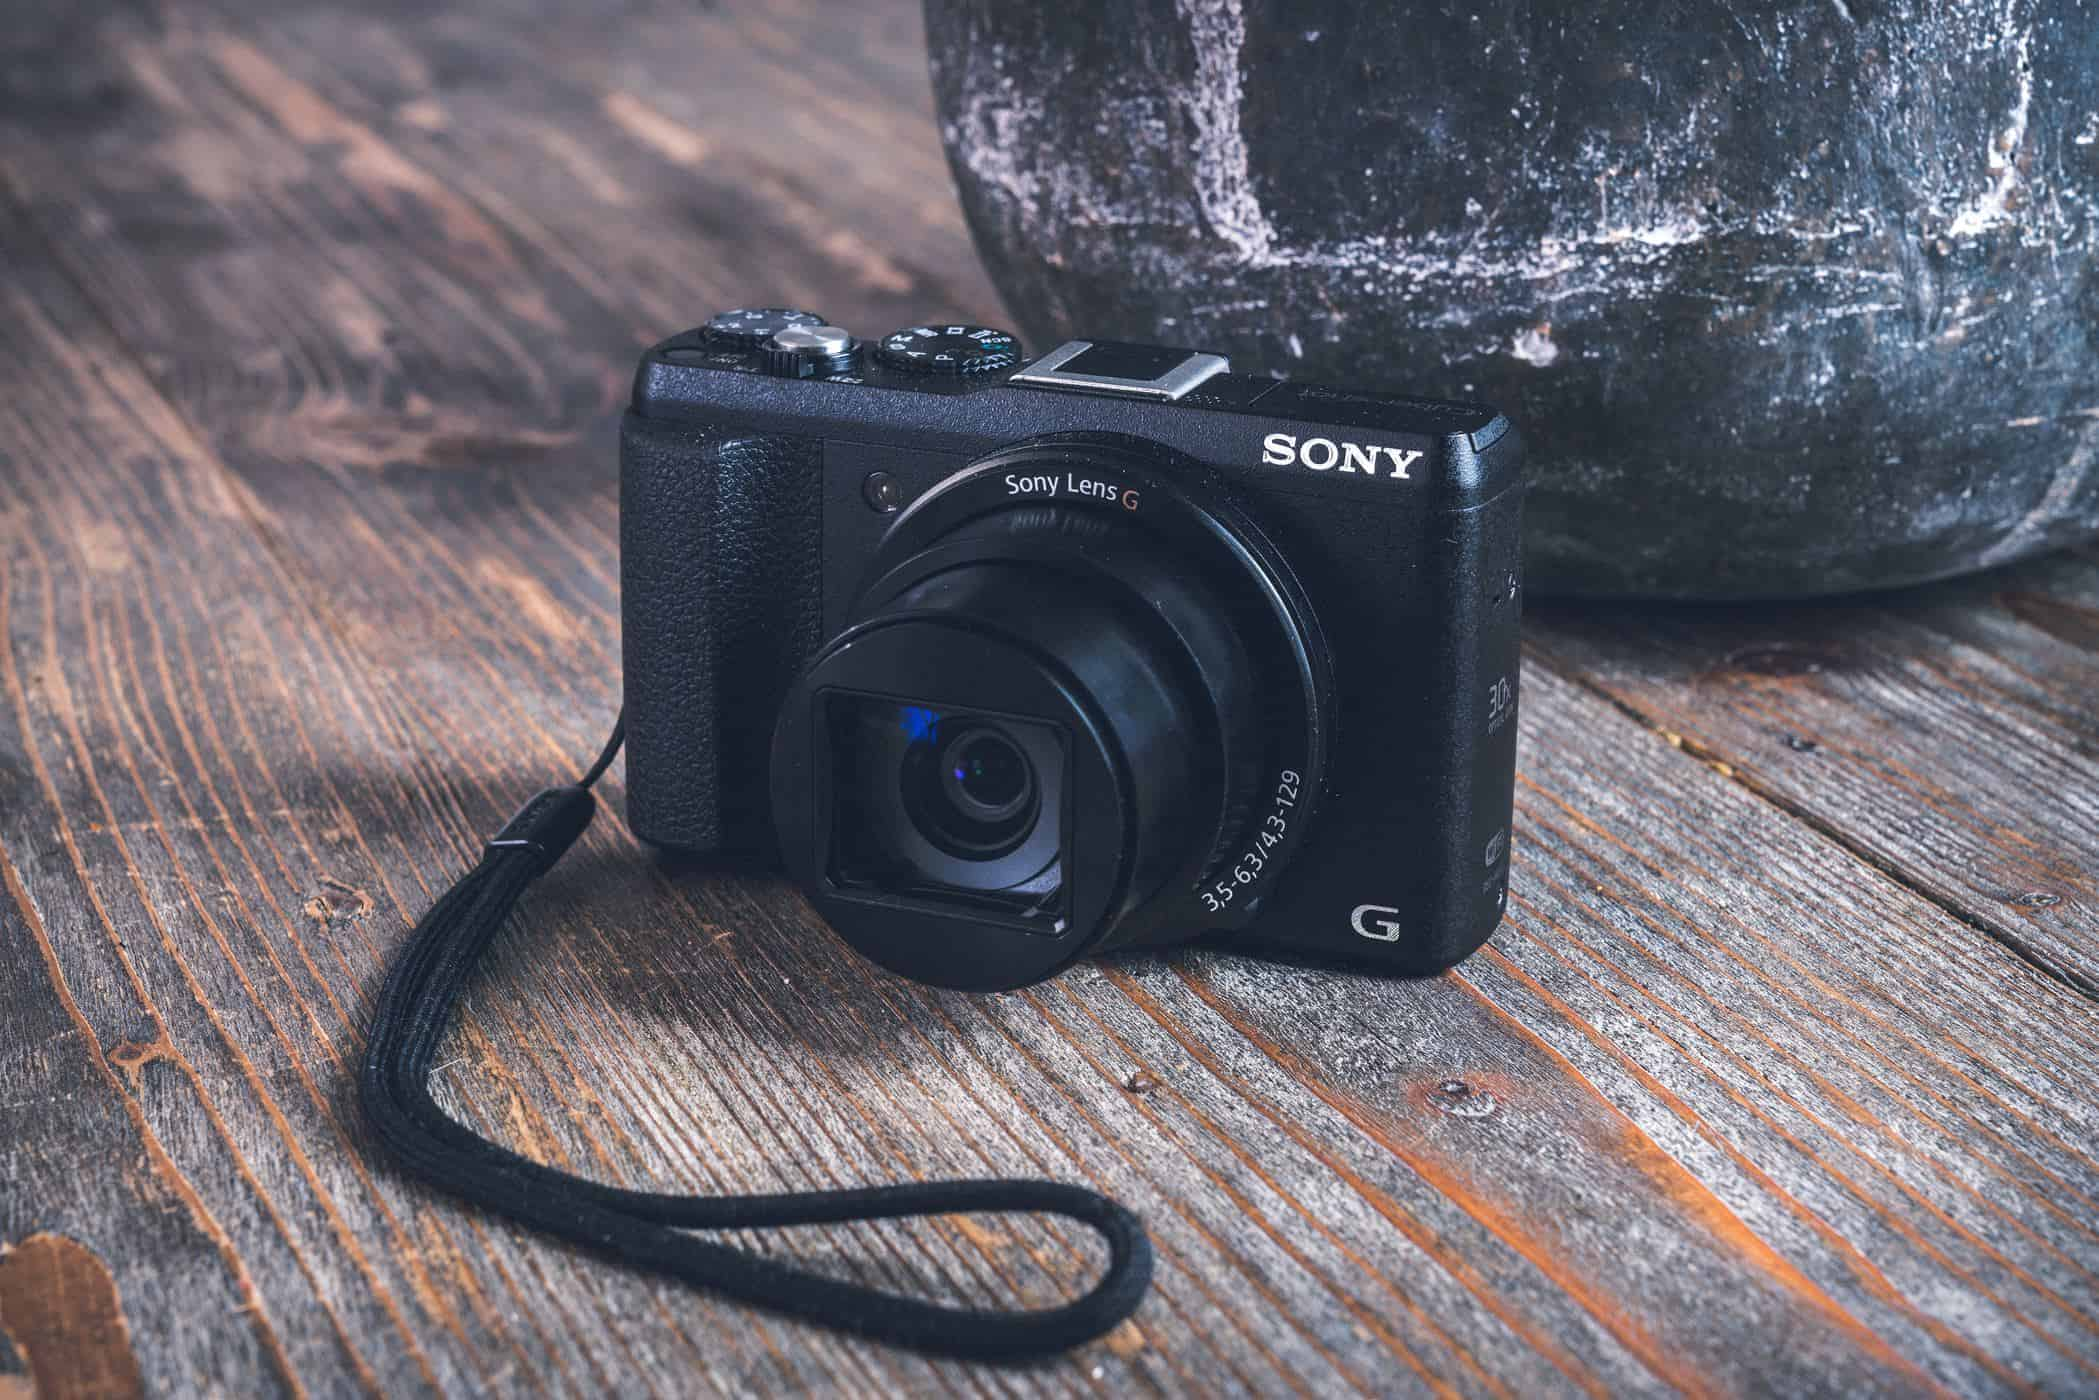 A Sony point and shoot camera